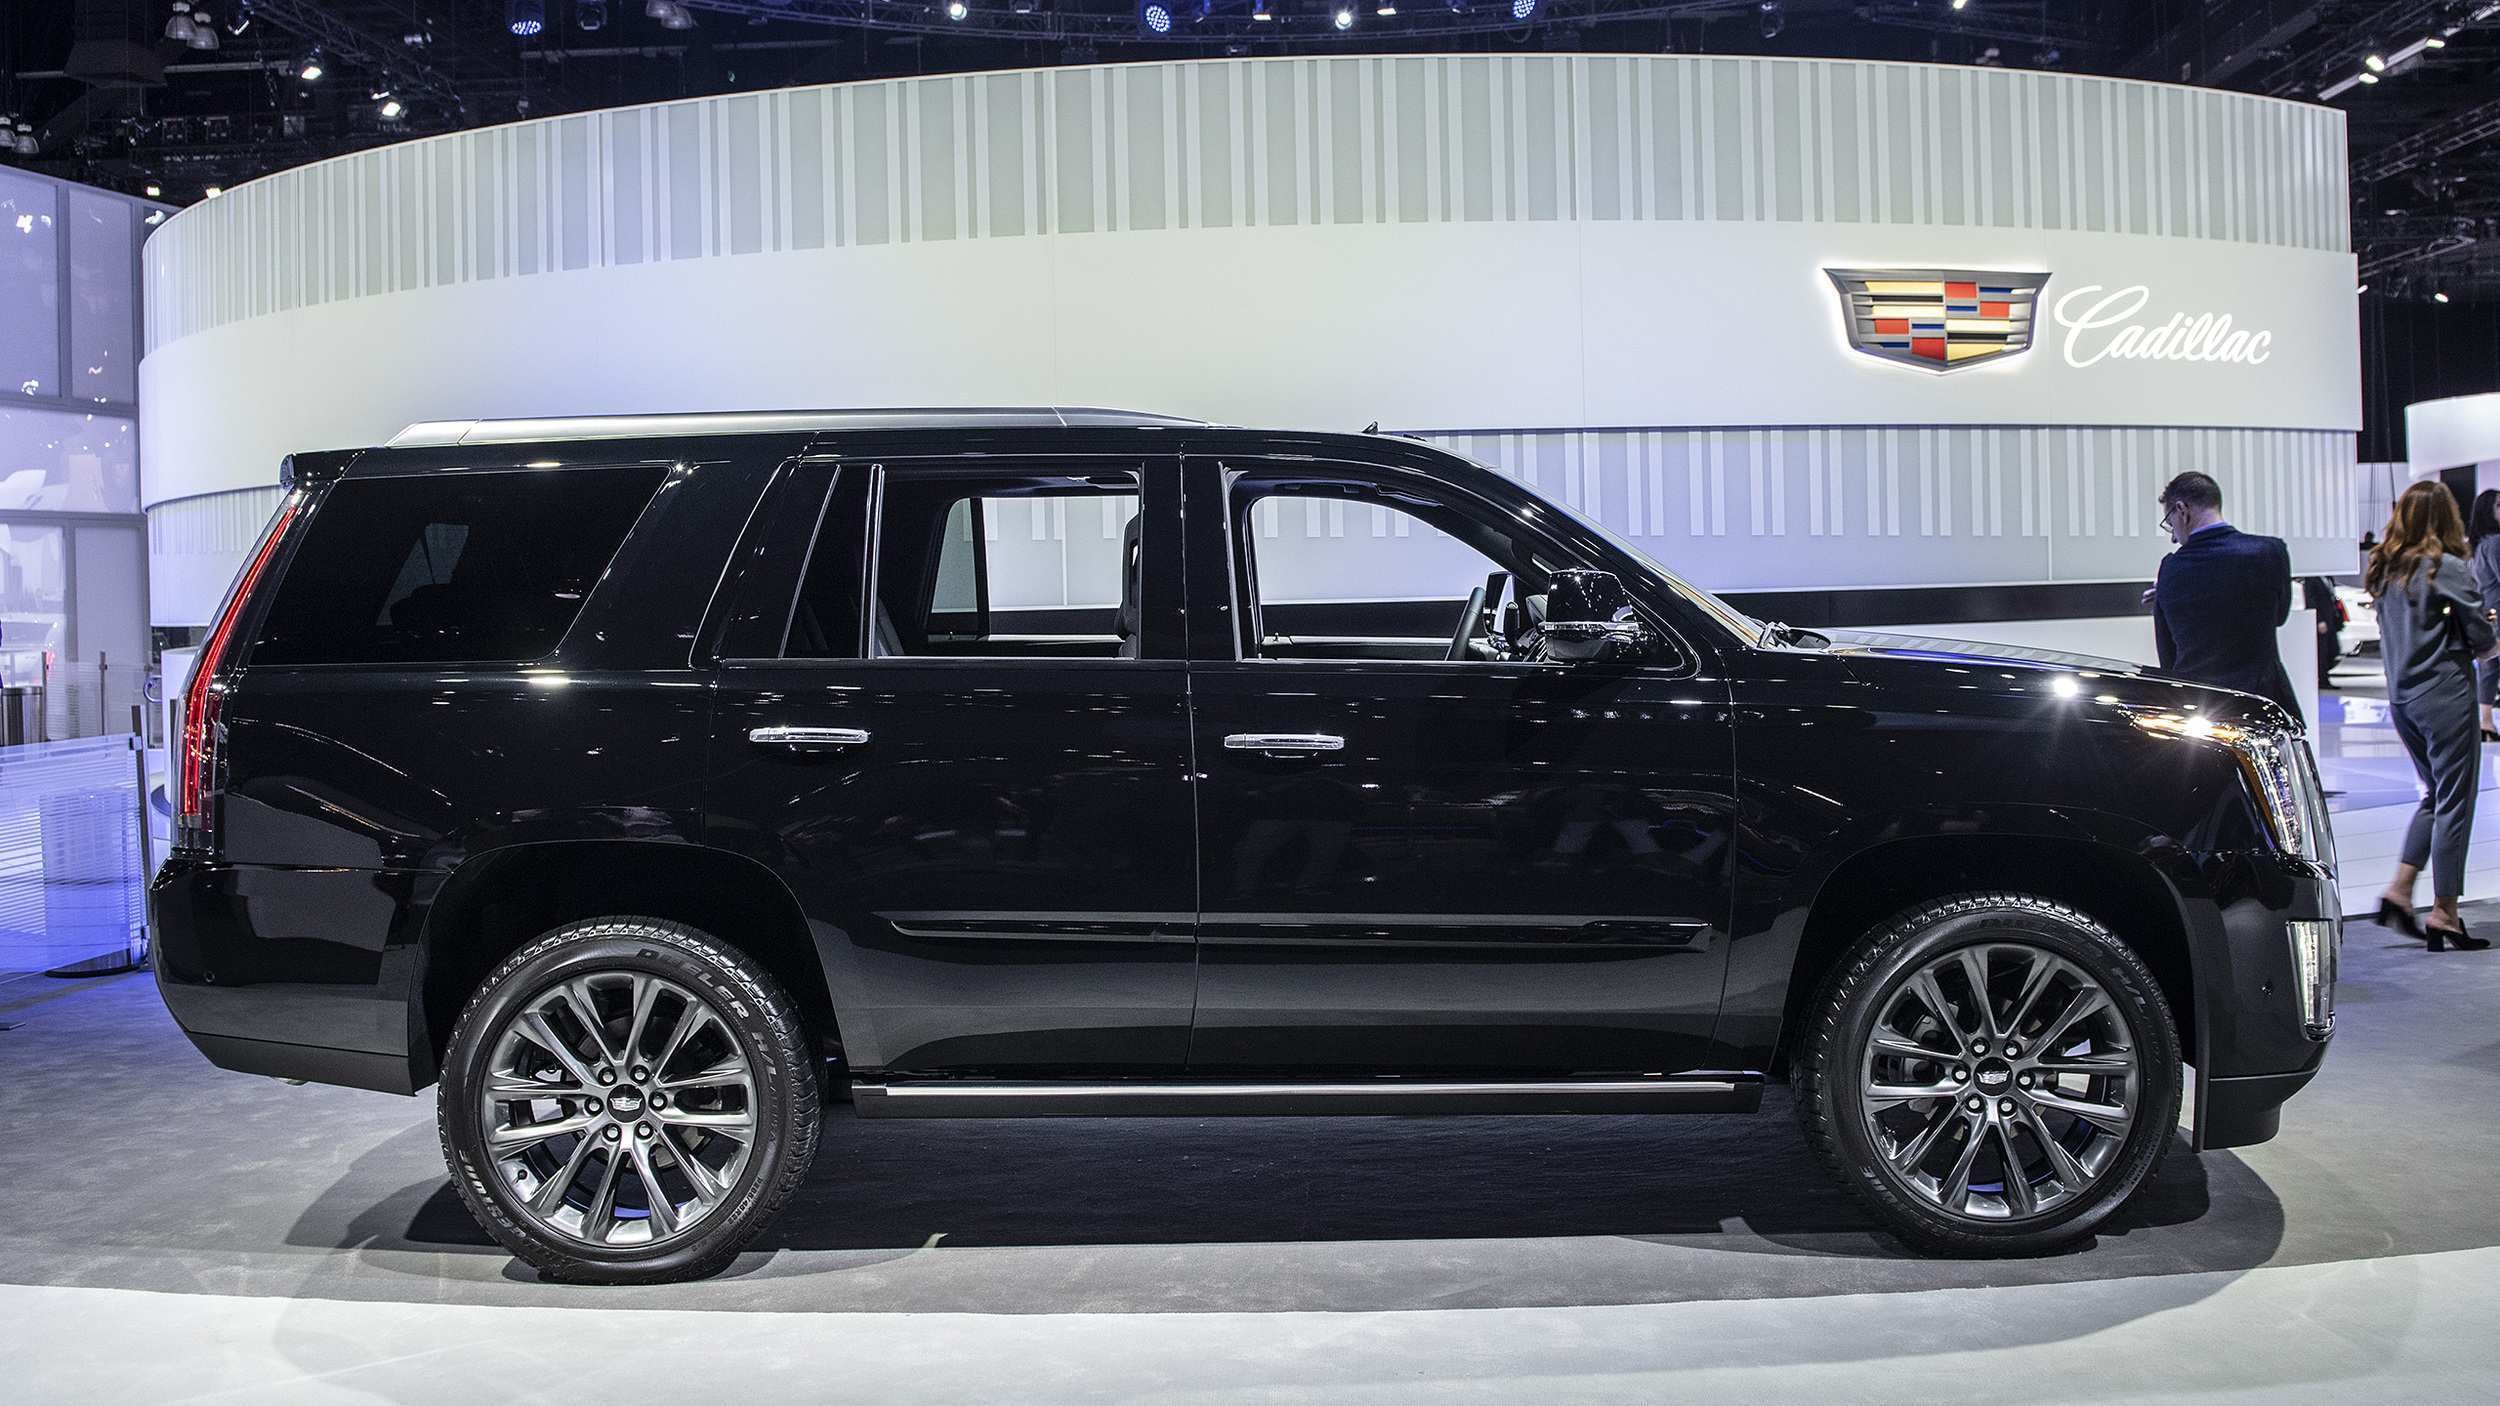 68 The Best 2019 Cadillac Escalade Vsport Configurations